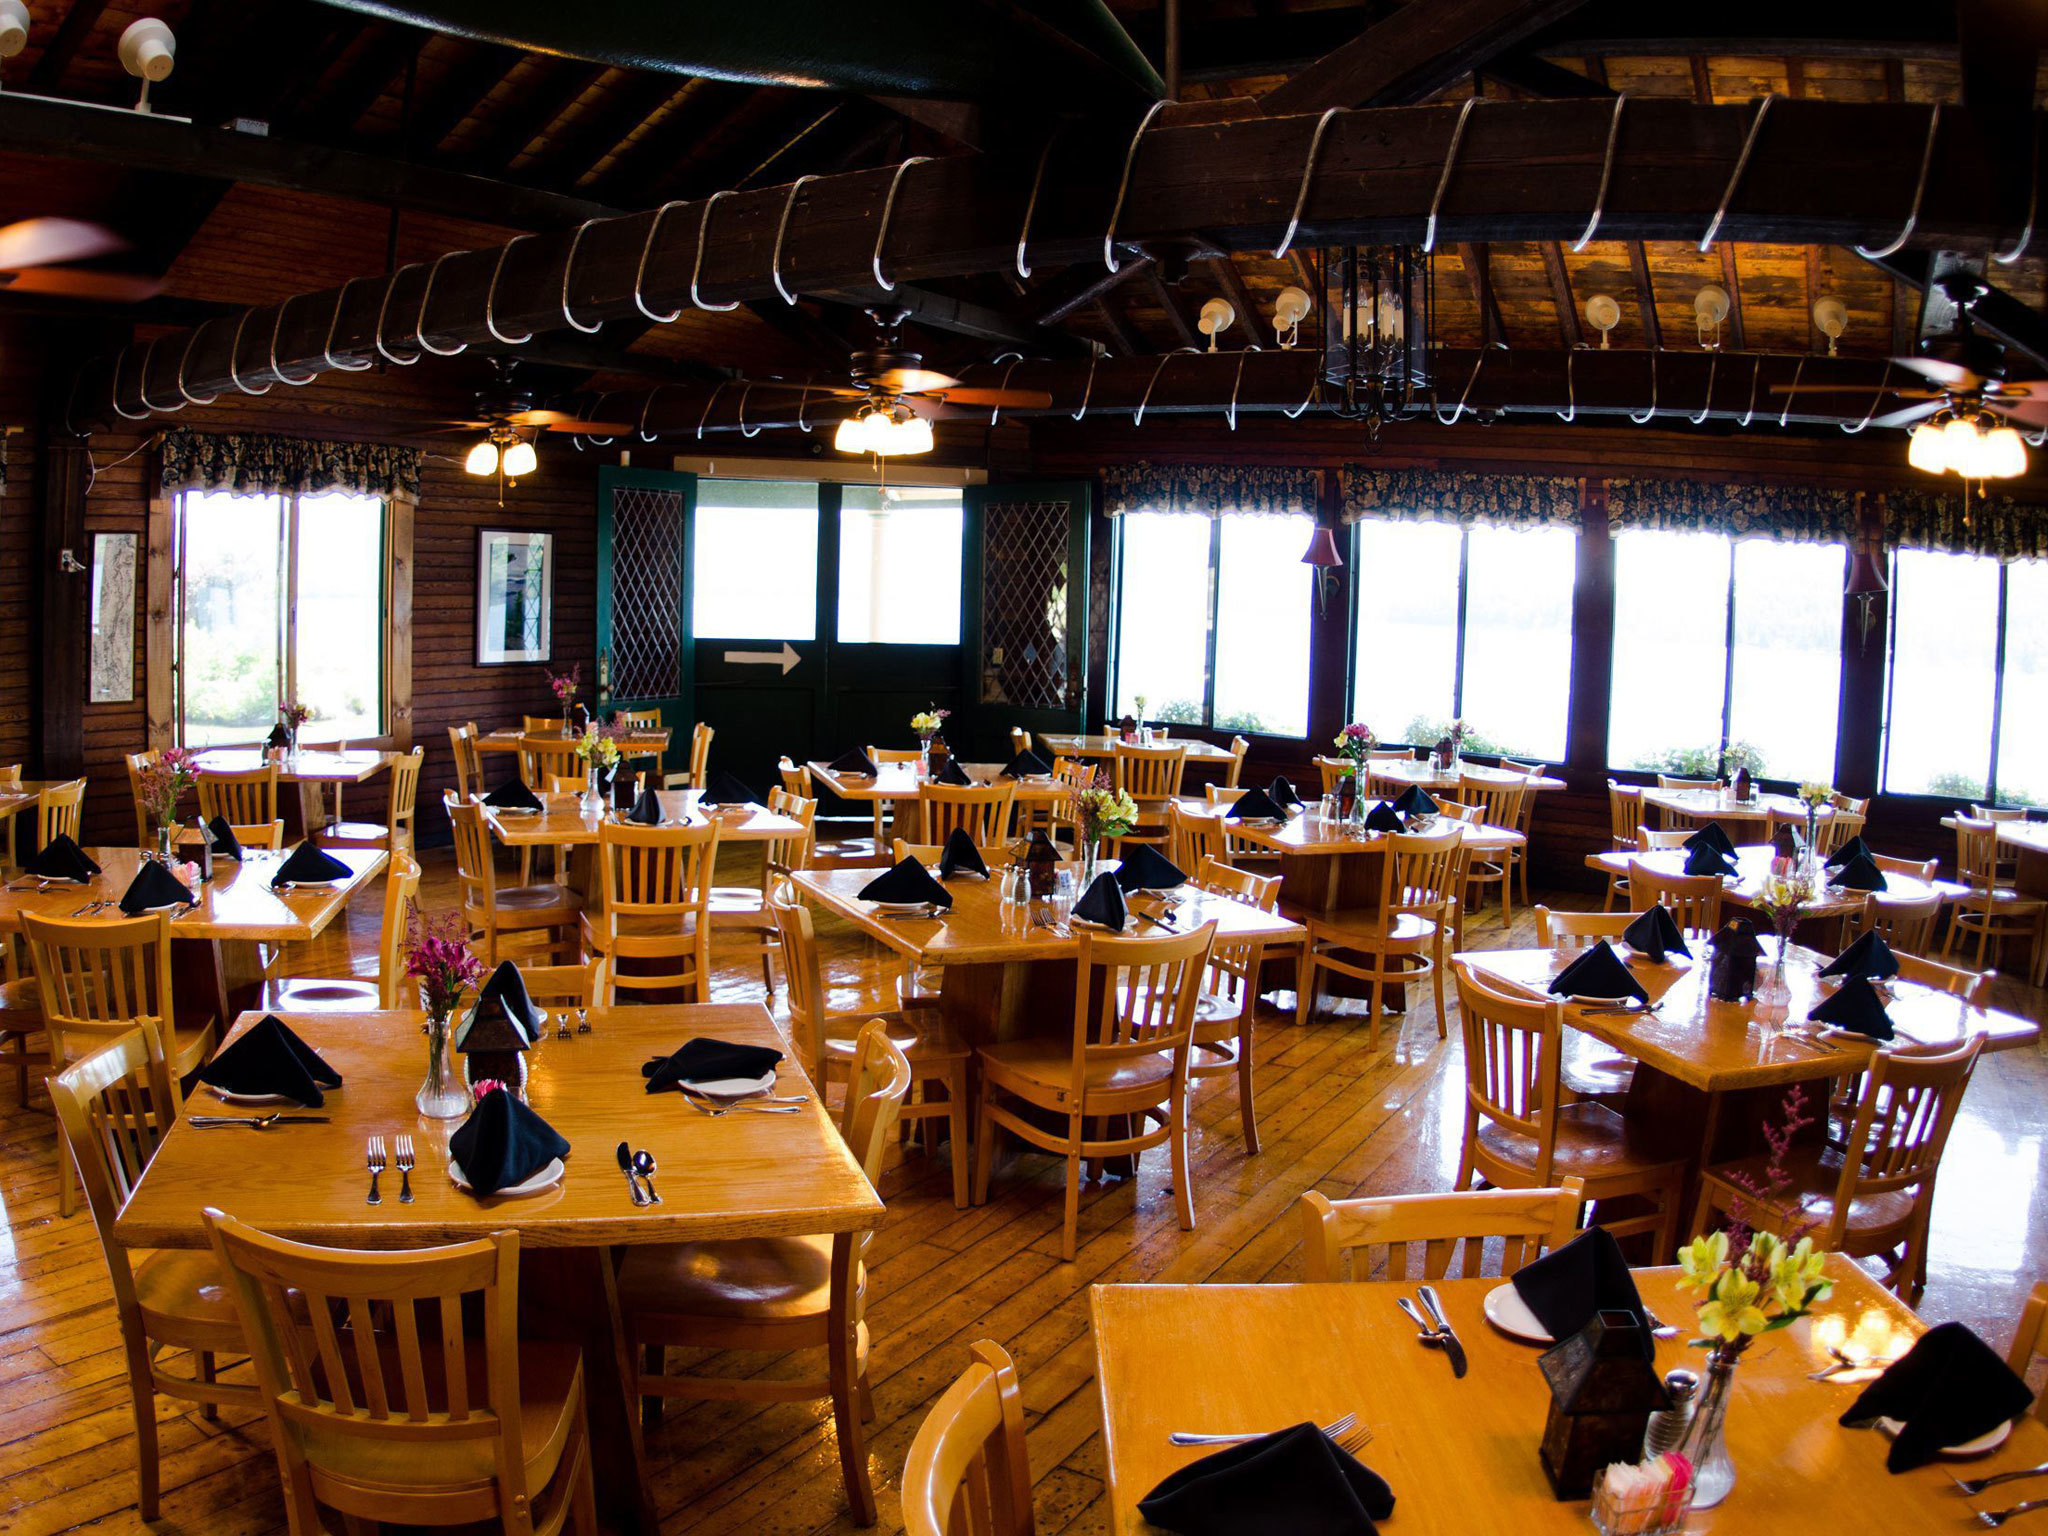 The Boathouse Restaurant - Lake George - US